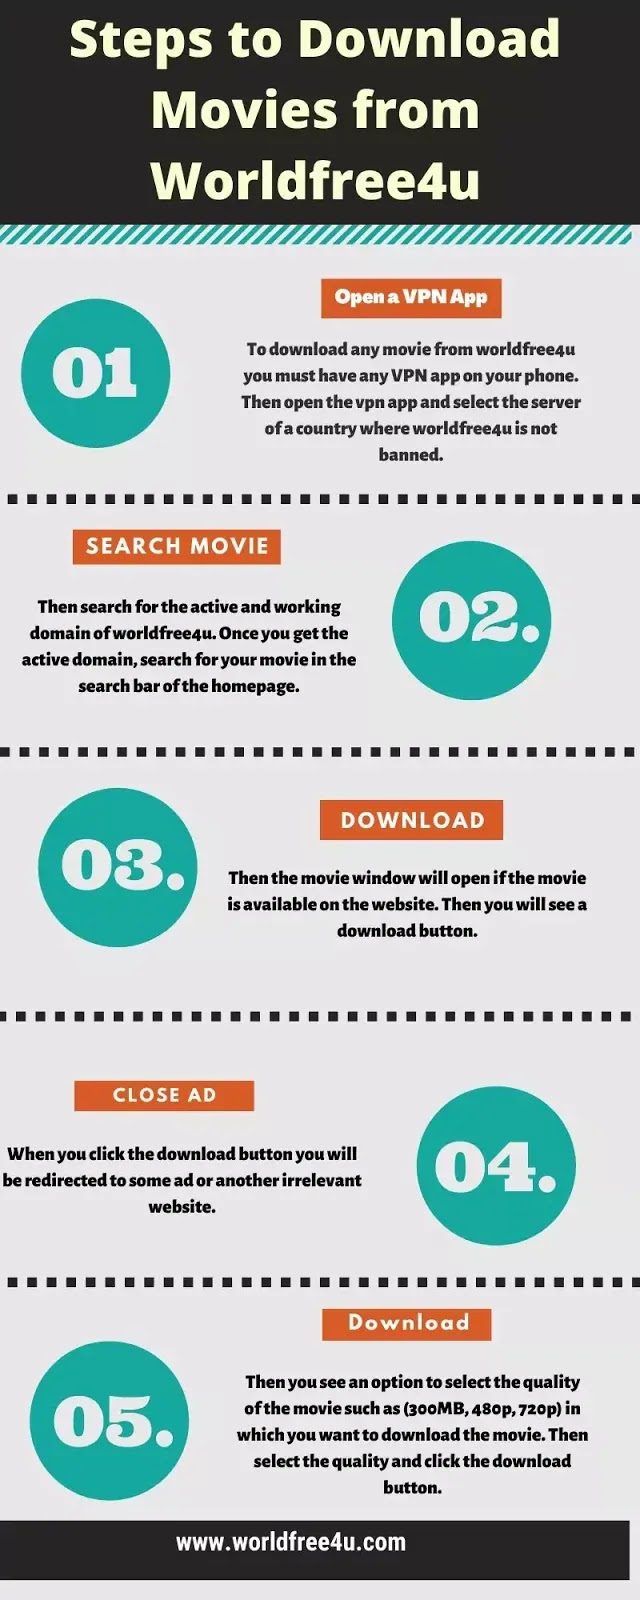 How to download movie from worldfree4u